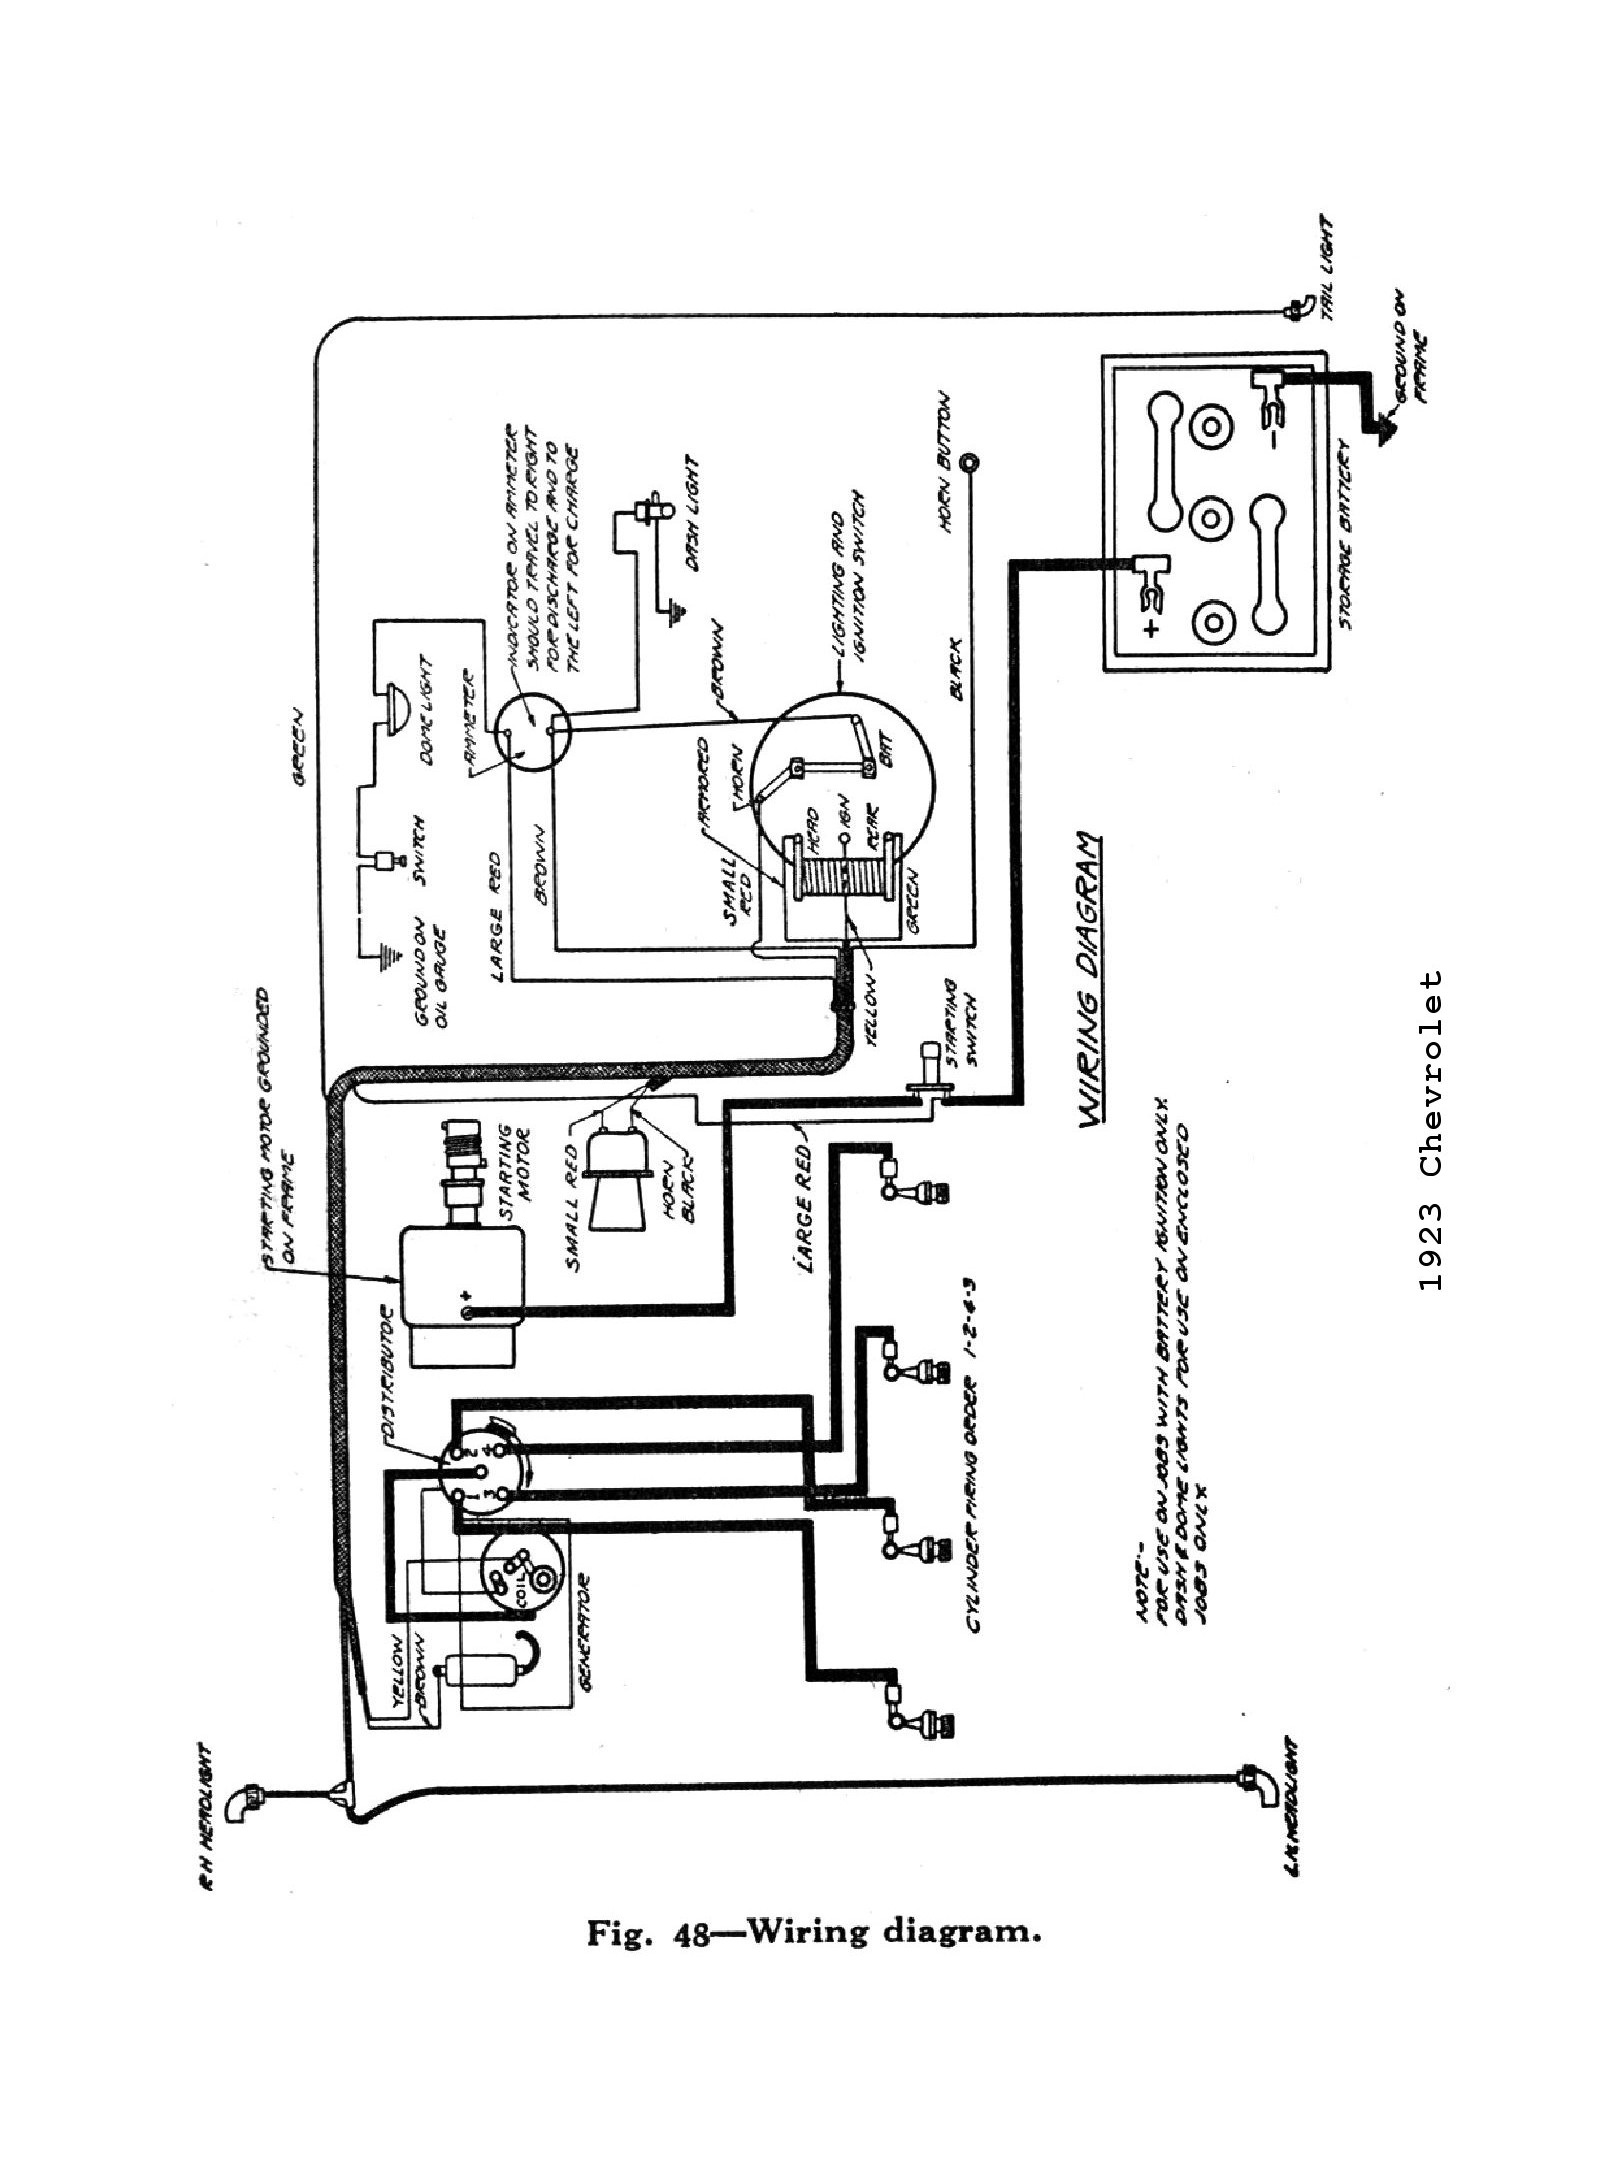 Epub Download 72 C10 Heater Wiring Diagram